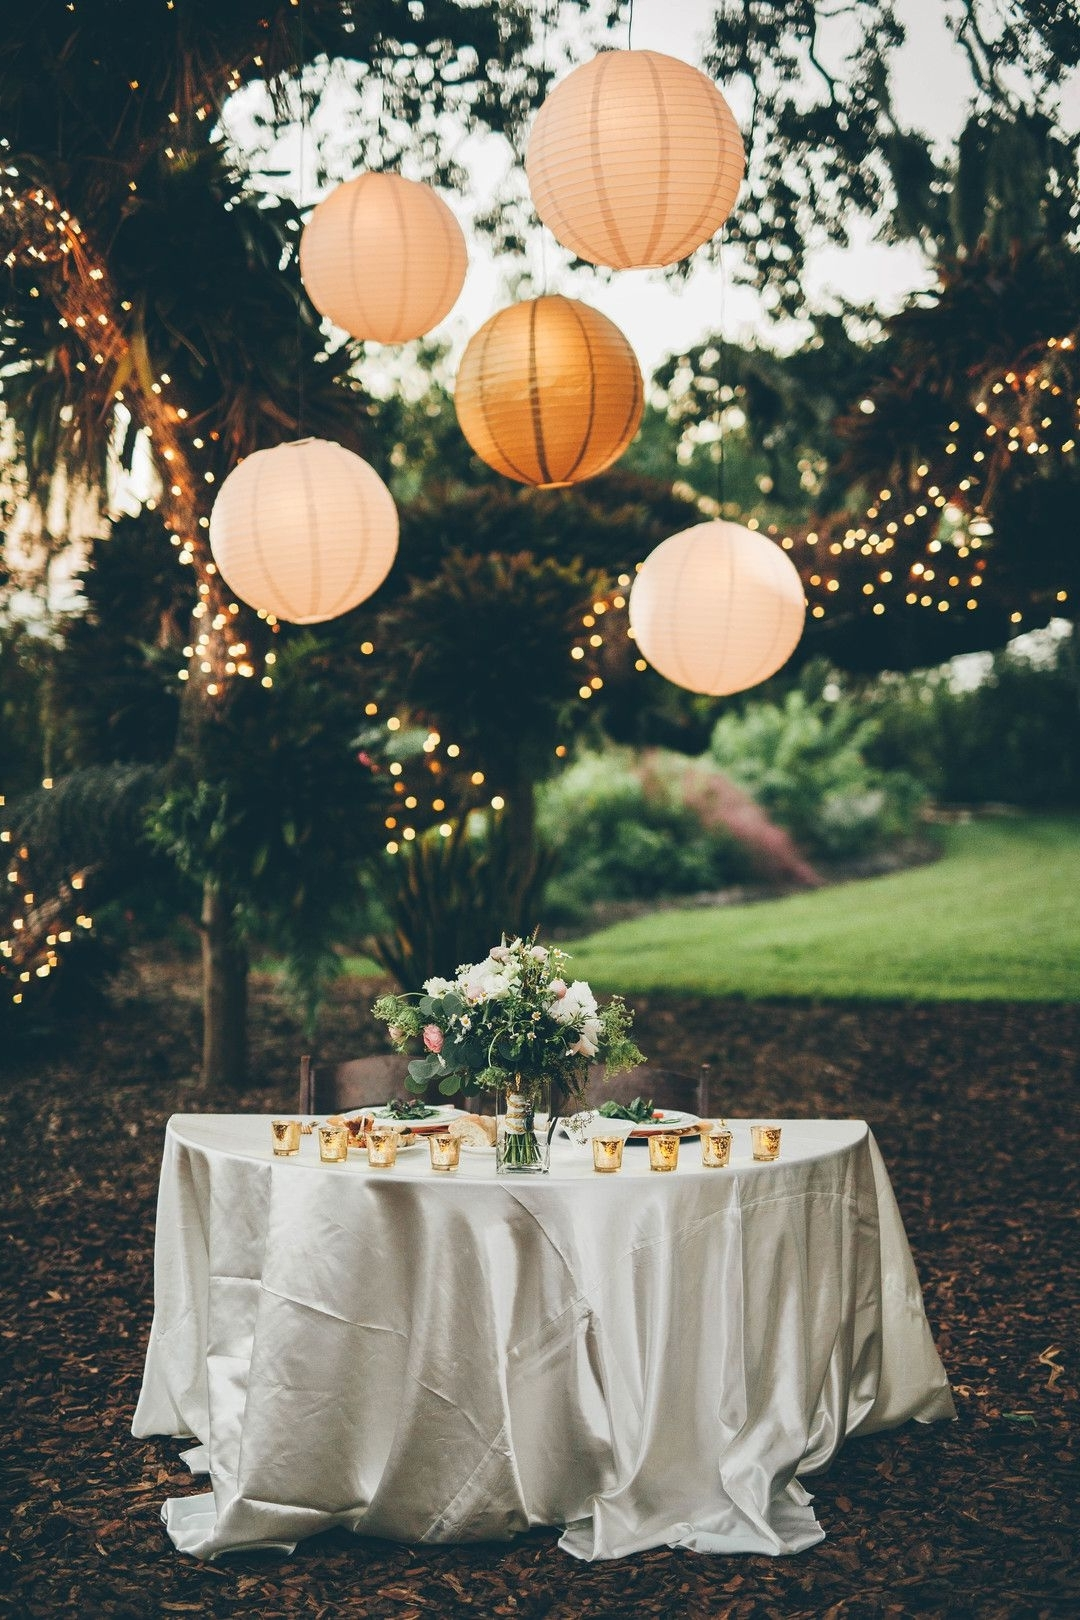 Outdoor Paper Lanterns Throughout Recent Wedding Reception Lighting Design, Paper Lantern Globes, Trees (View 17 of 20)